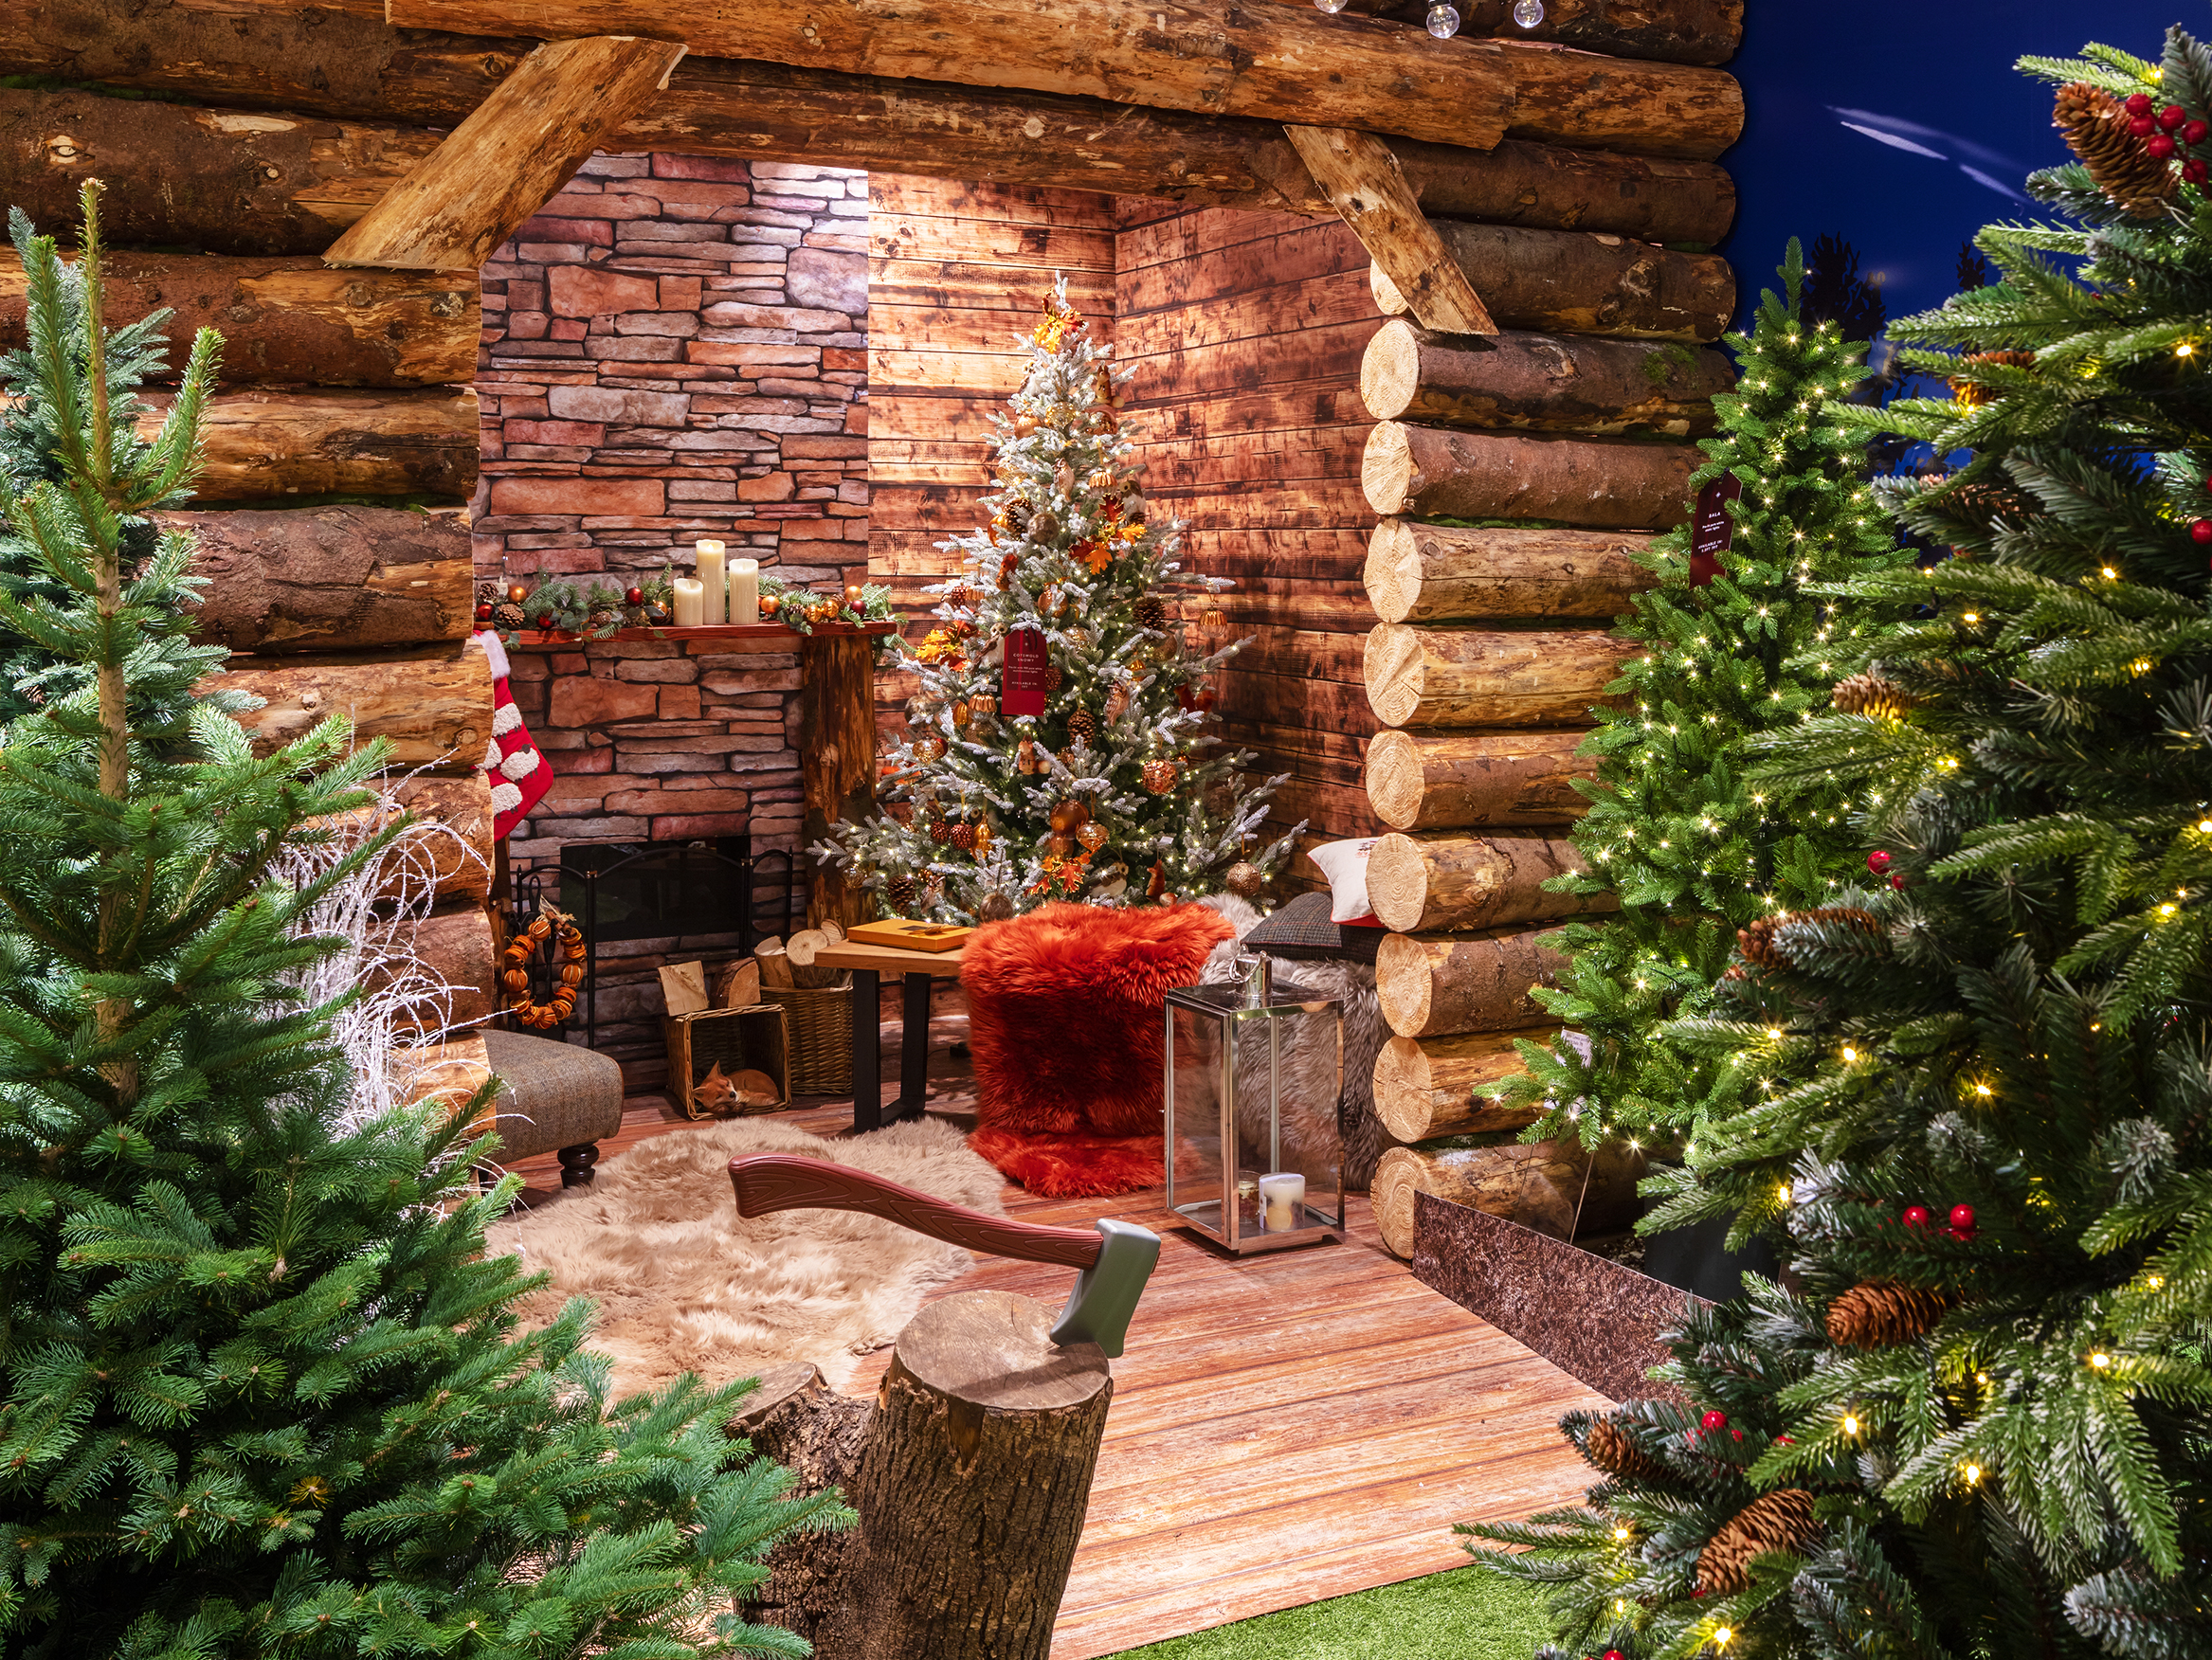 In-Store Christmas Display 9 | Prop Studios | Formroom | John Lewis Christmas